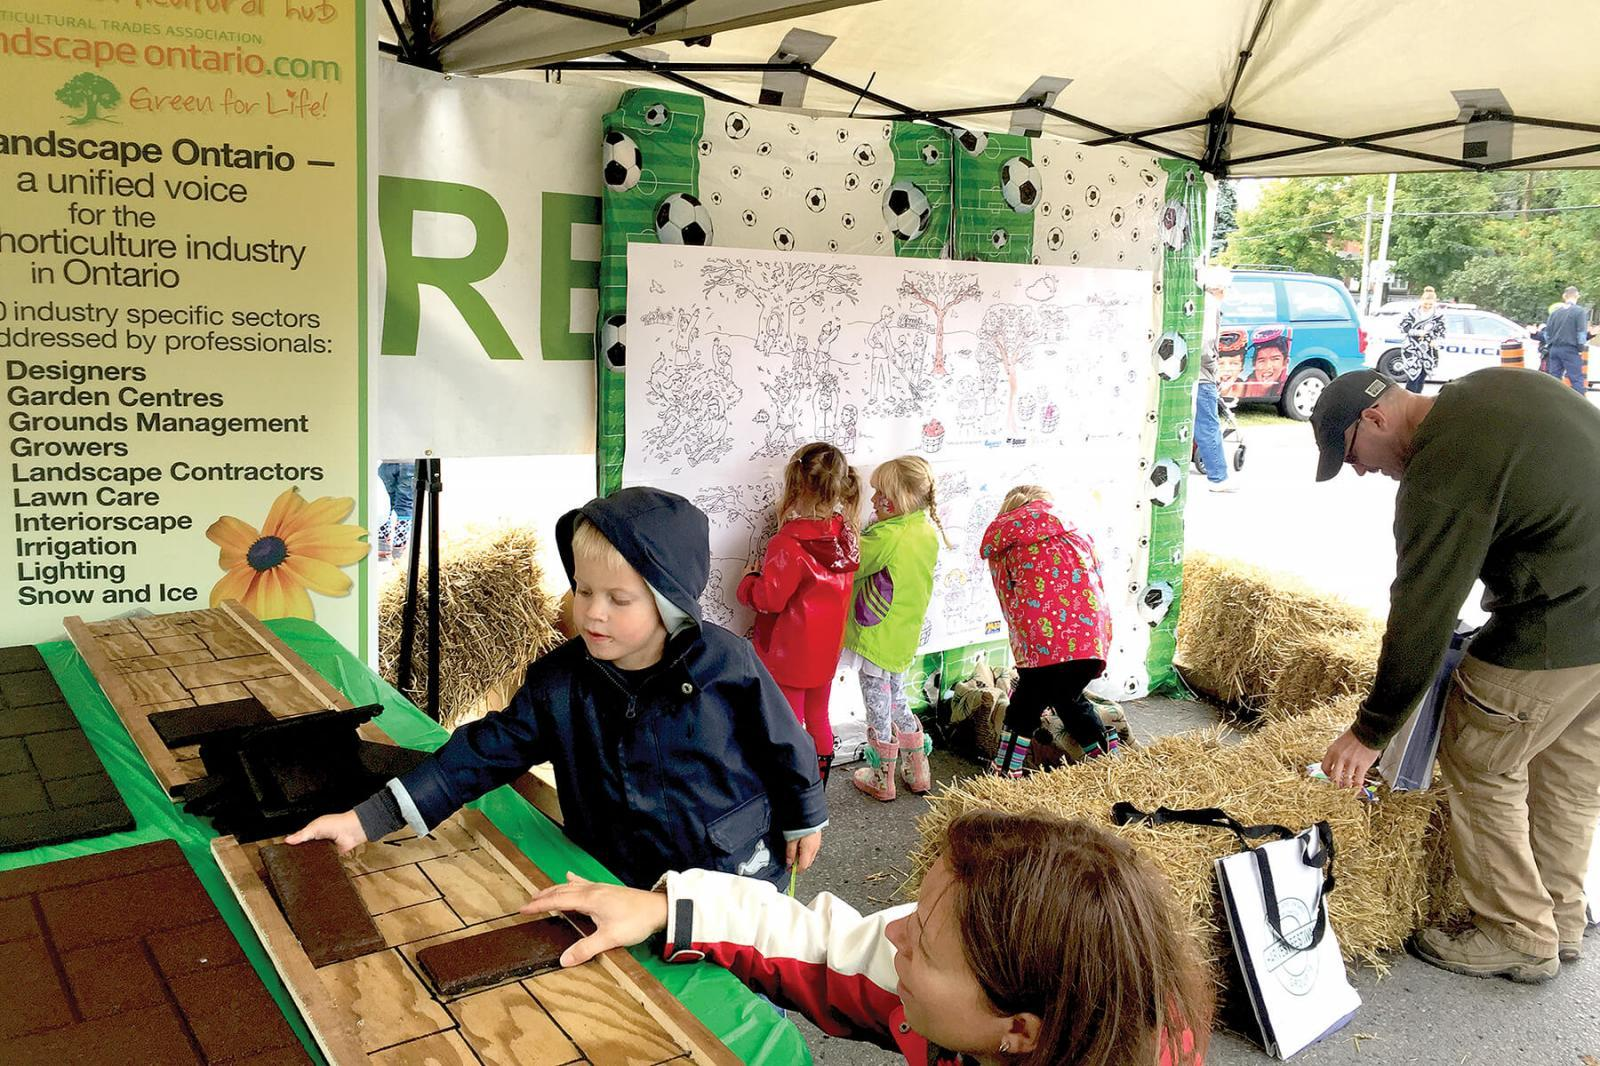 A giant colouring board and wood carvings attracted a great deal of attention to the Landscape Ontario Durham Chapter display at the Brooklin/Whitby Harvest Festival.